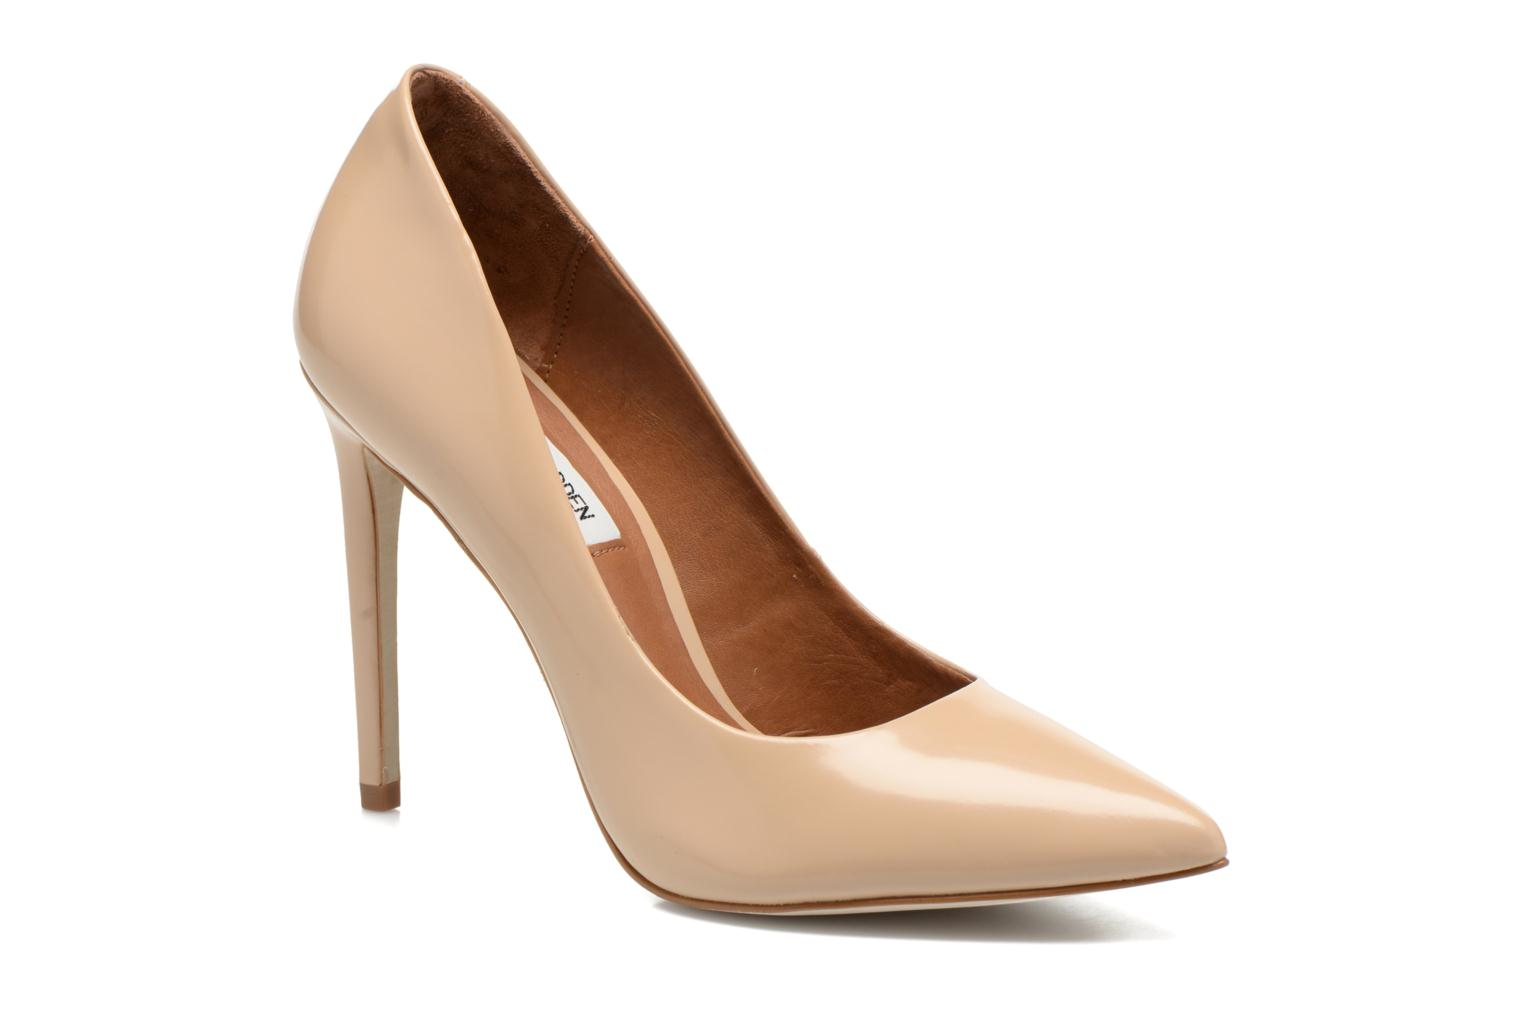 Pumps Proto Pump by Steve Madden